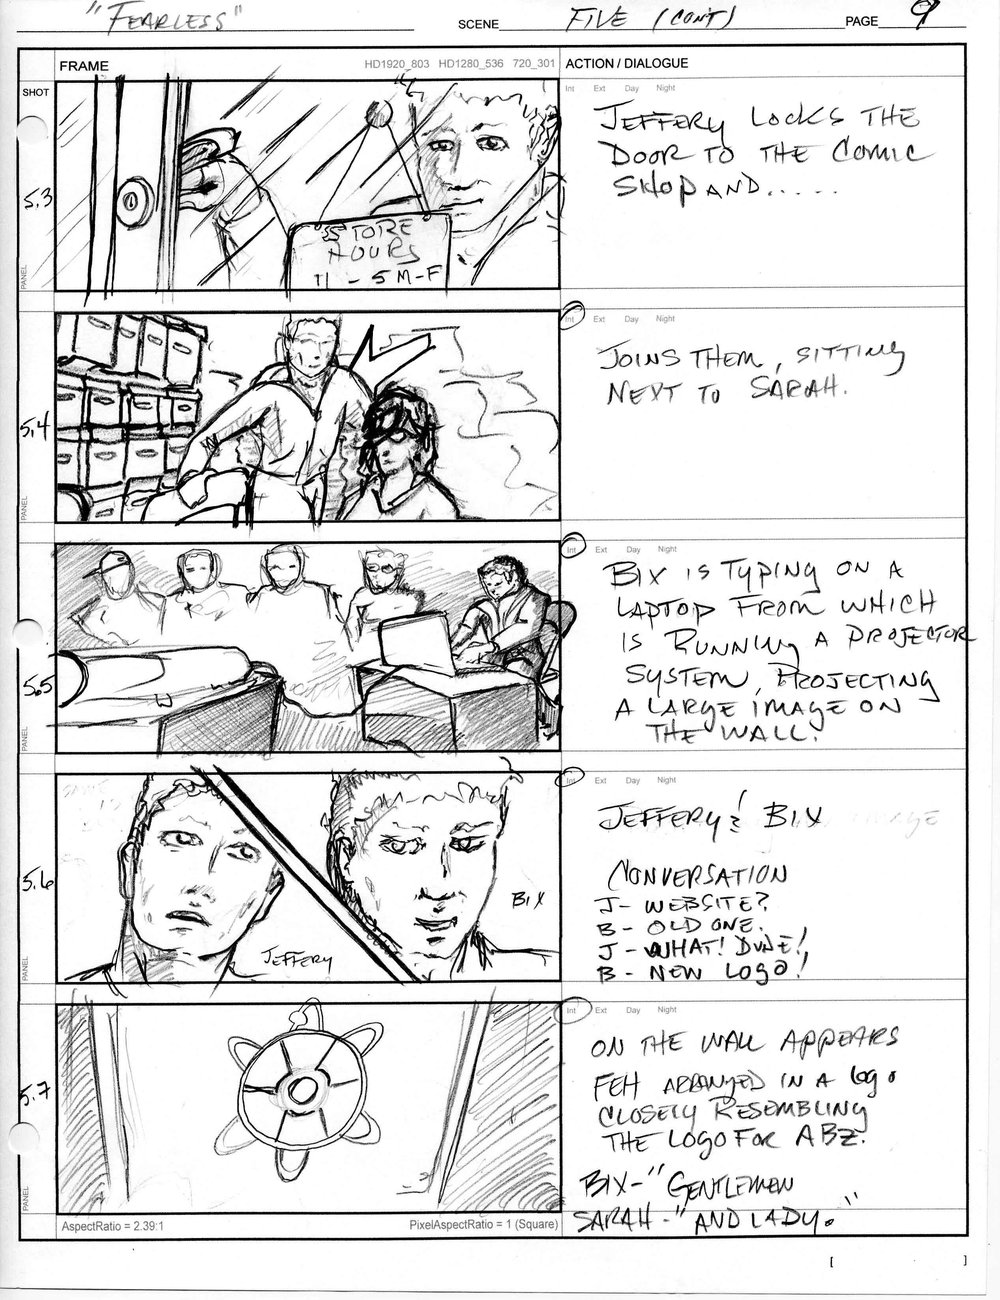 Fearless Episode Hunters - Storyboard sample E